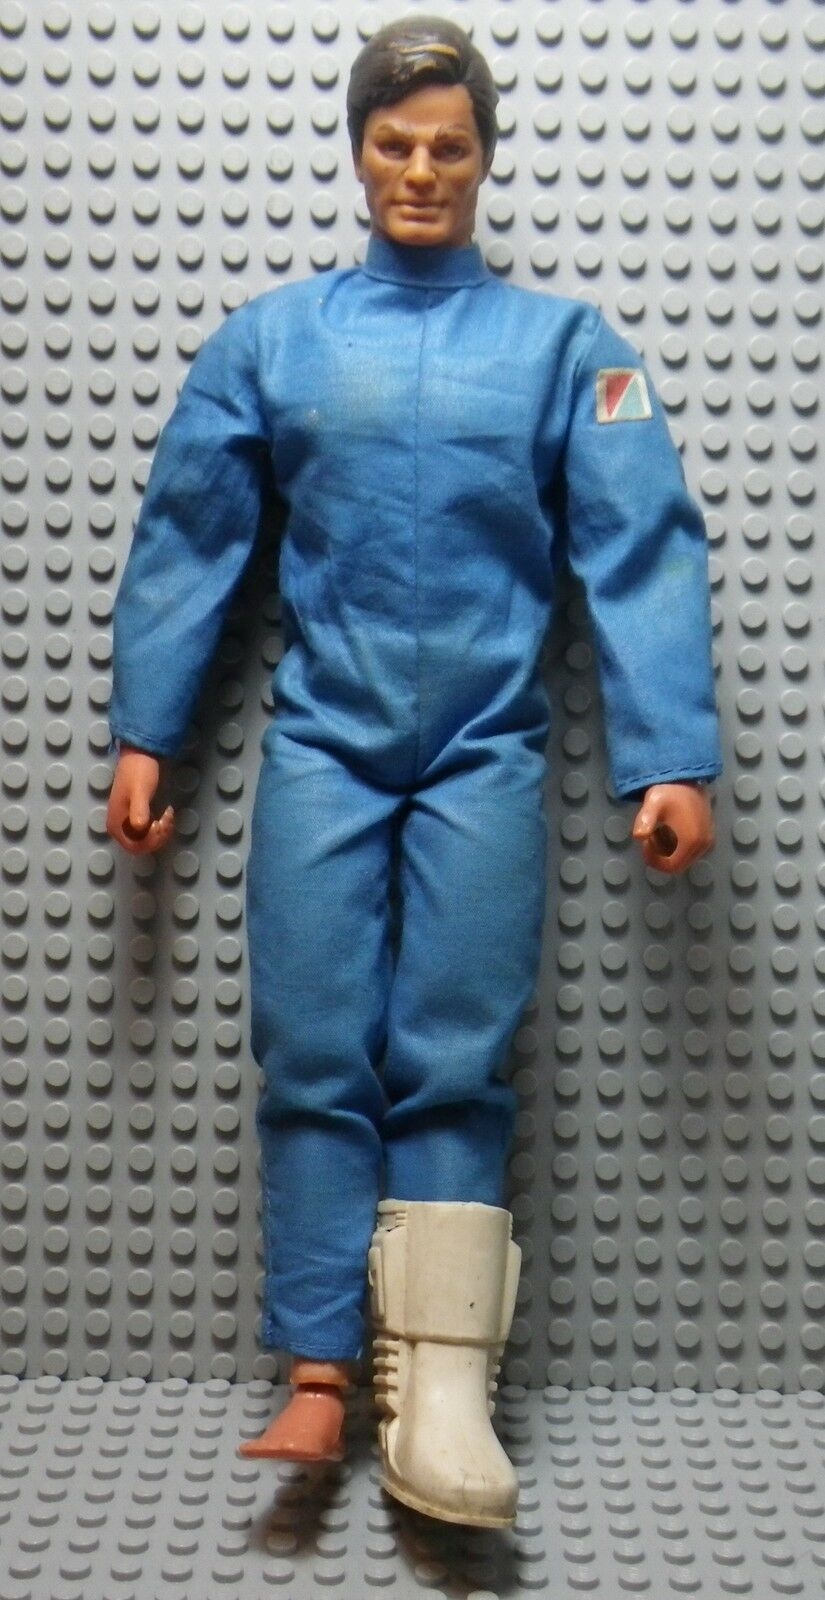 BIG JIM - AIR ACE   Pilote   2242 - Global Command - MADE IN ITALY Mattel 1985